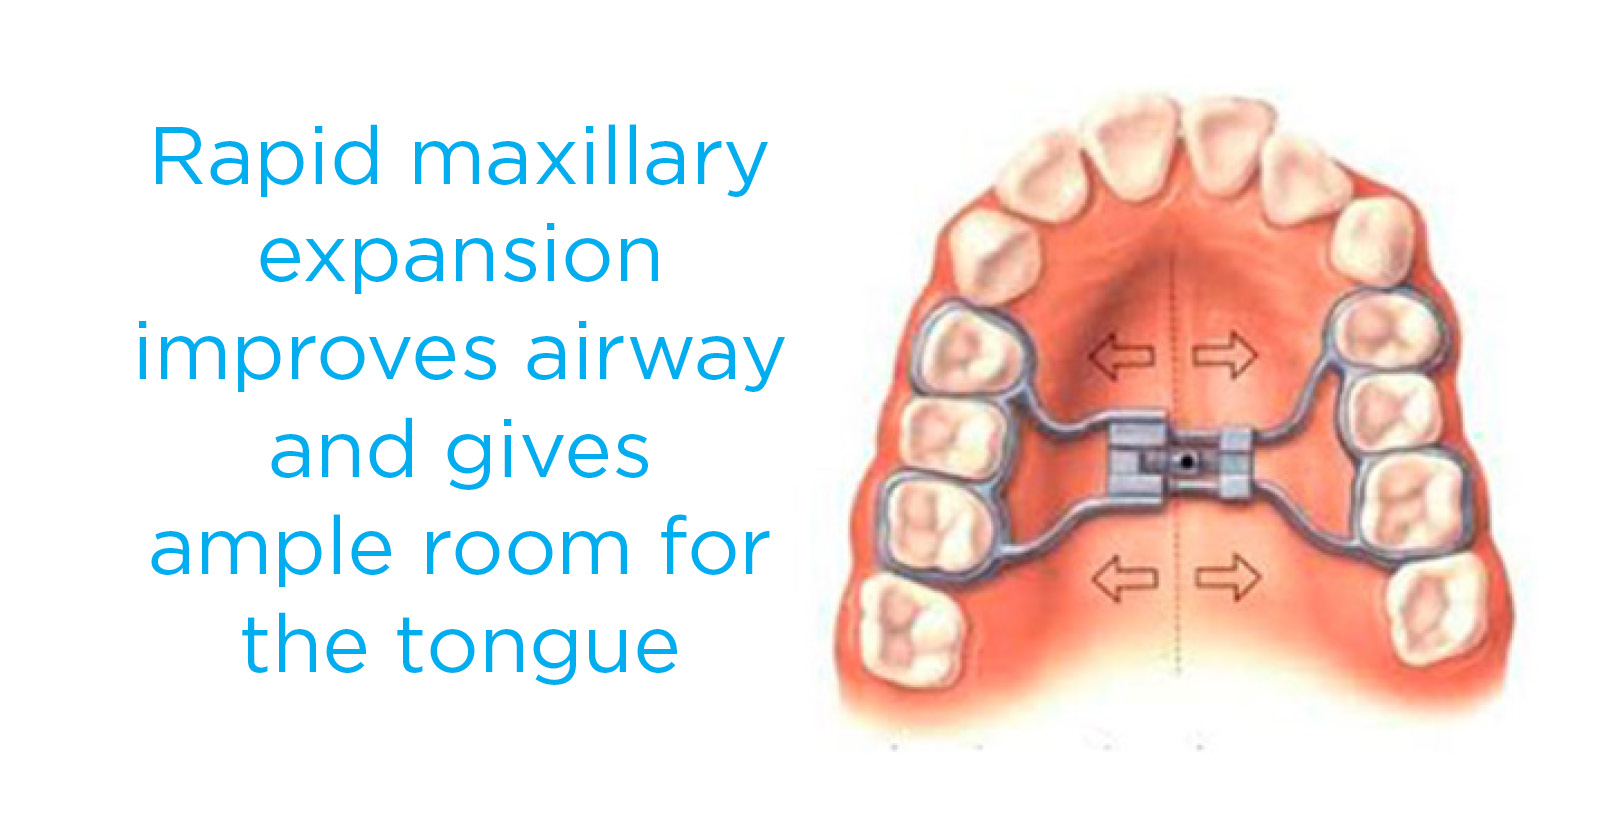 Rapid Maxillary Expansion infographic